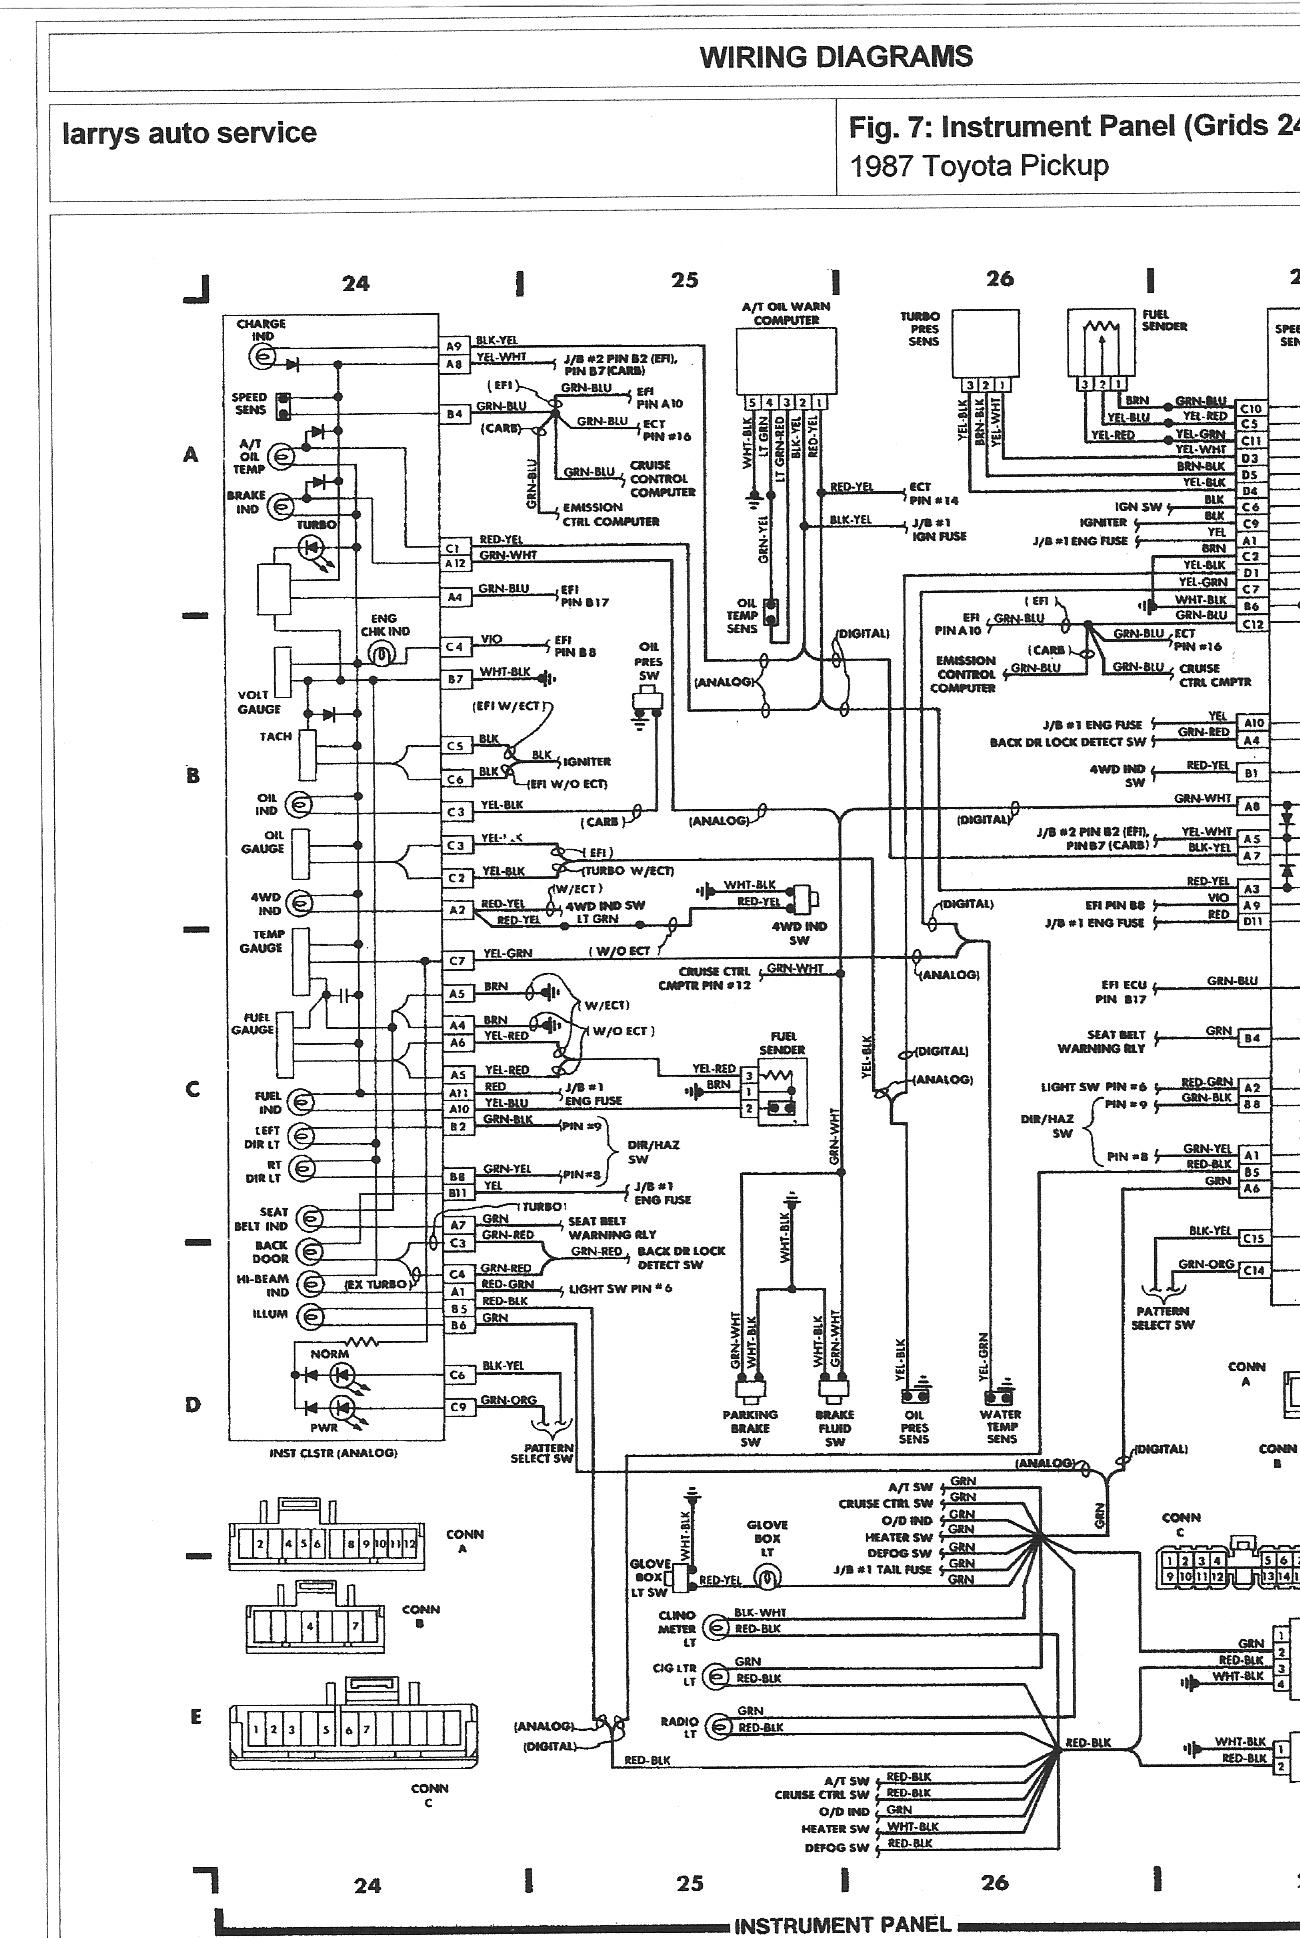 99 chevy pickup headlight wiring diagram i have a 1987 toyota pickup 4wd 22r engine. my temp gauge ... #15